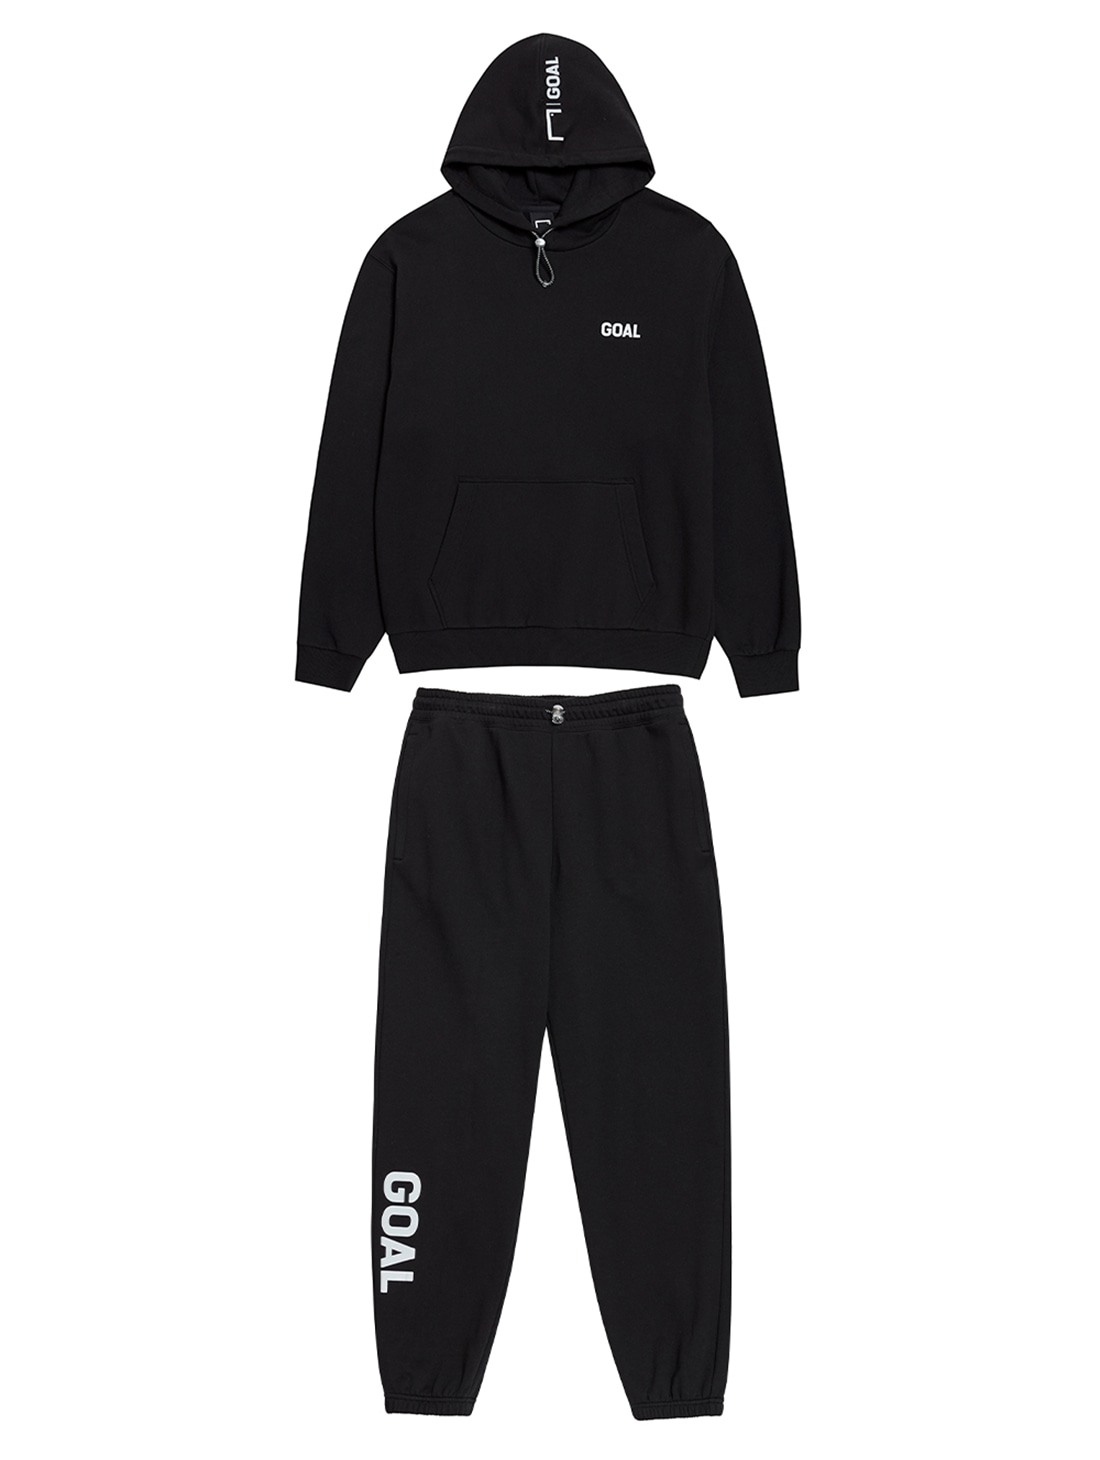 GOALSTUDIO [10% OFF] FLOCKING HOODIE & PANTS SET - BLACK